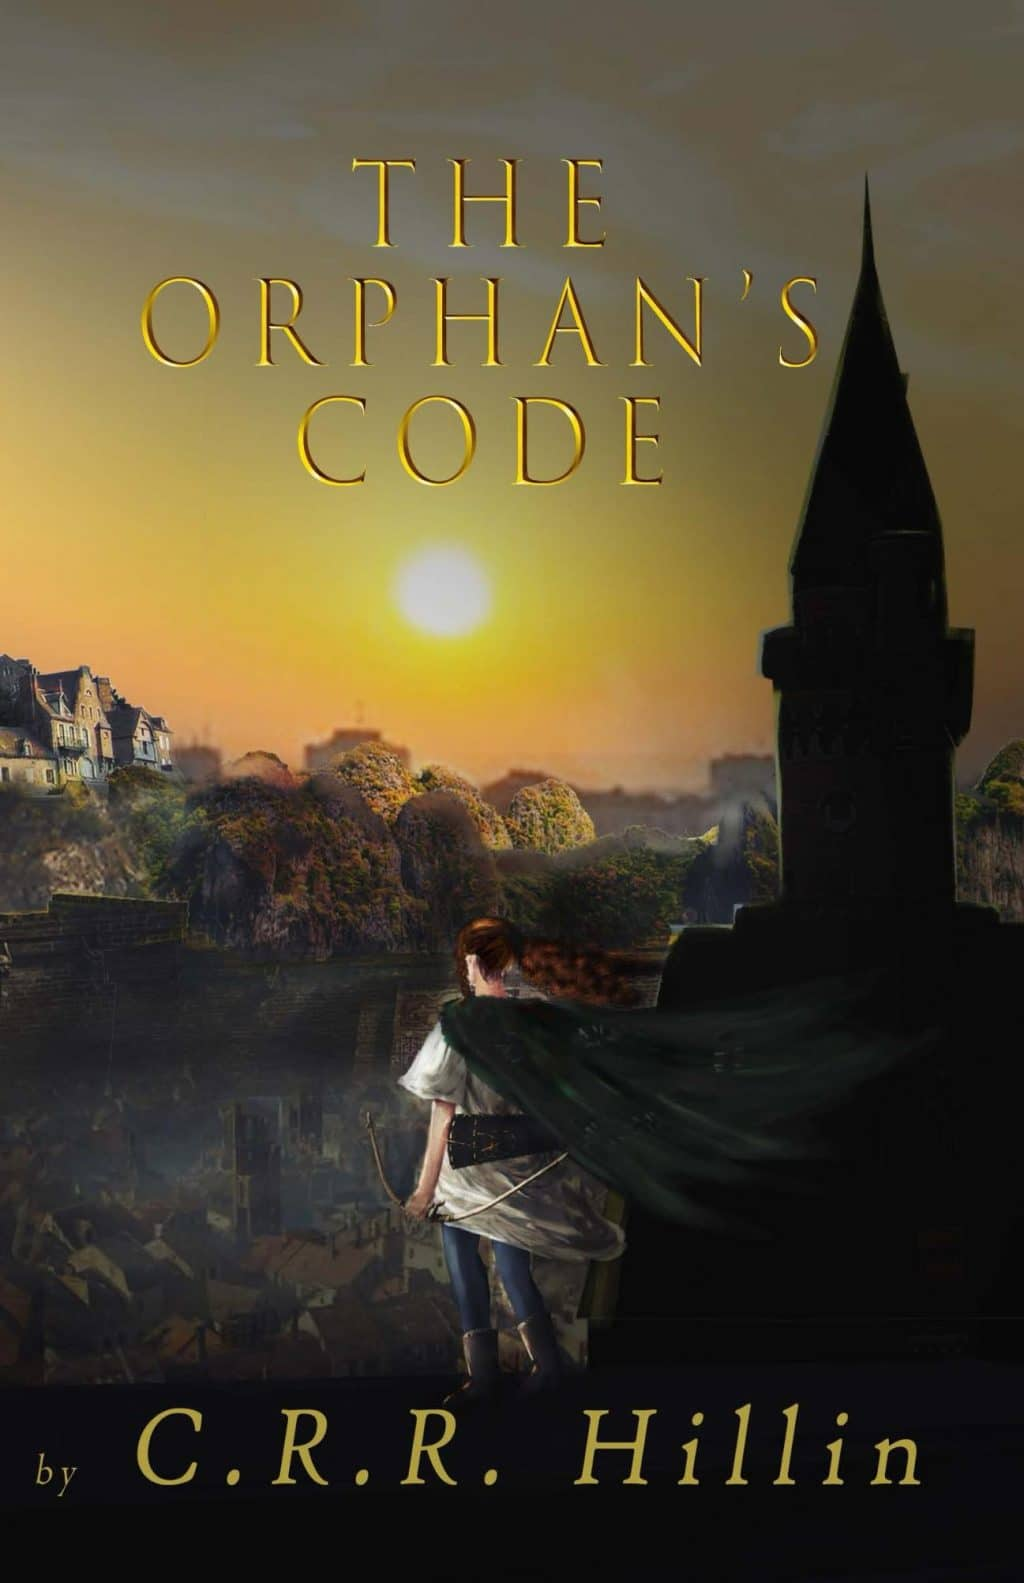 https://www.amazon.com/Orphans-Code-C-R-R-Hillin/dp/1987670639/